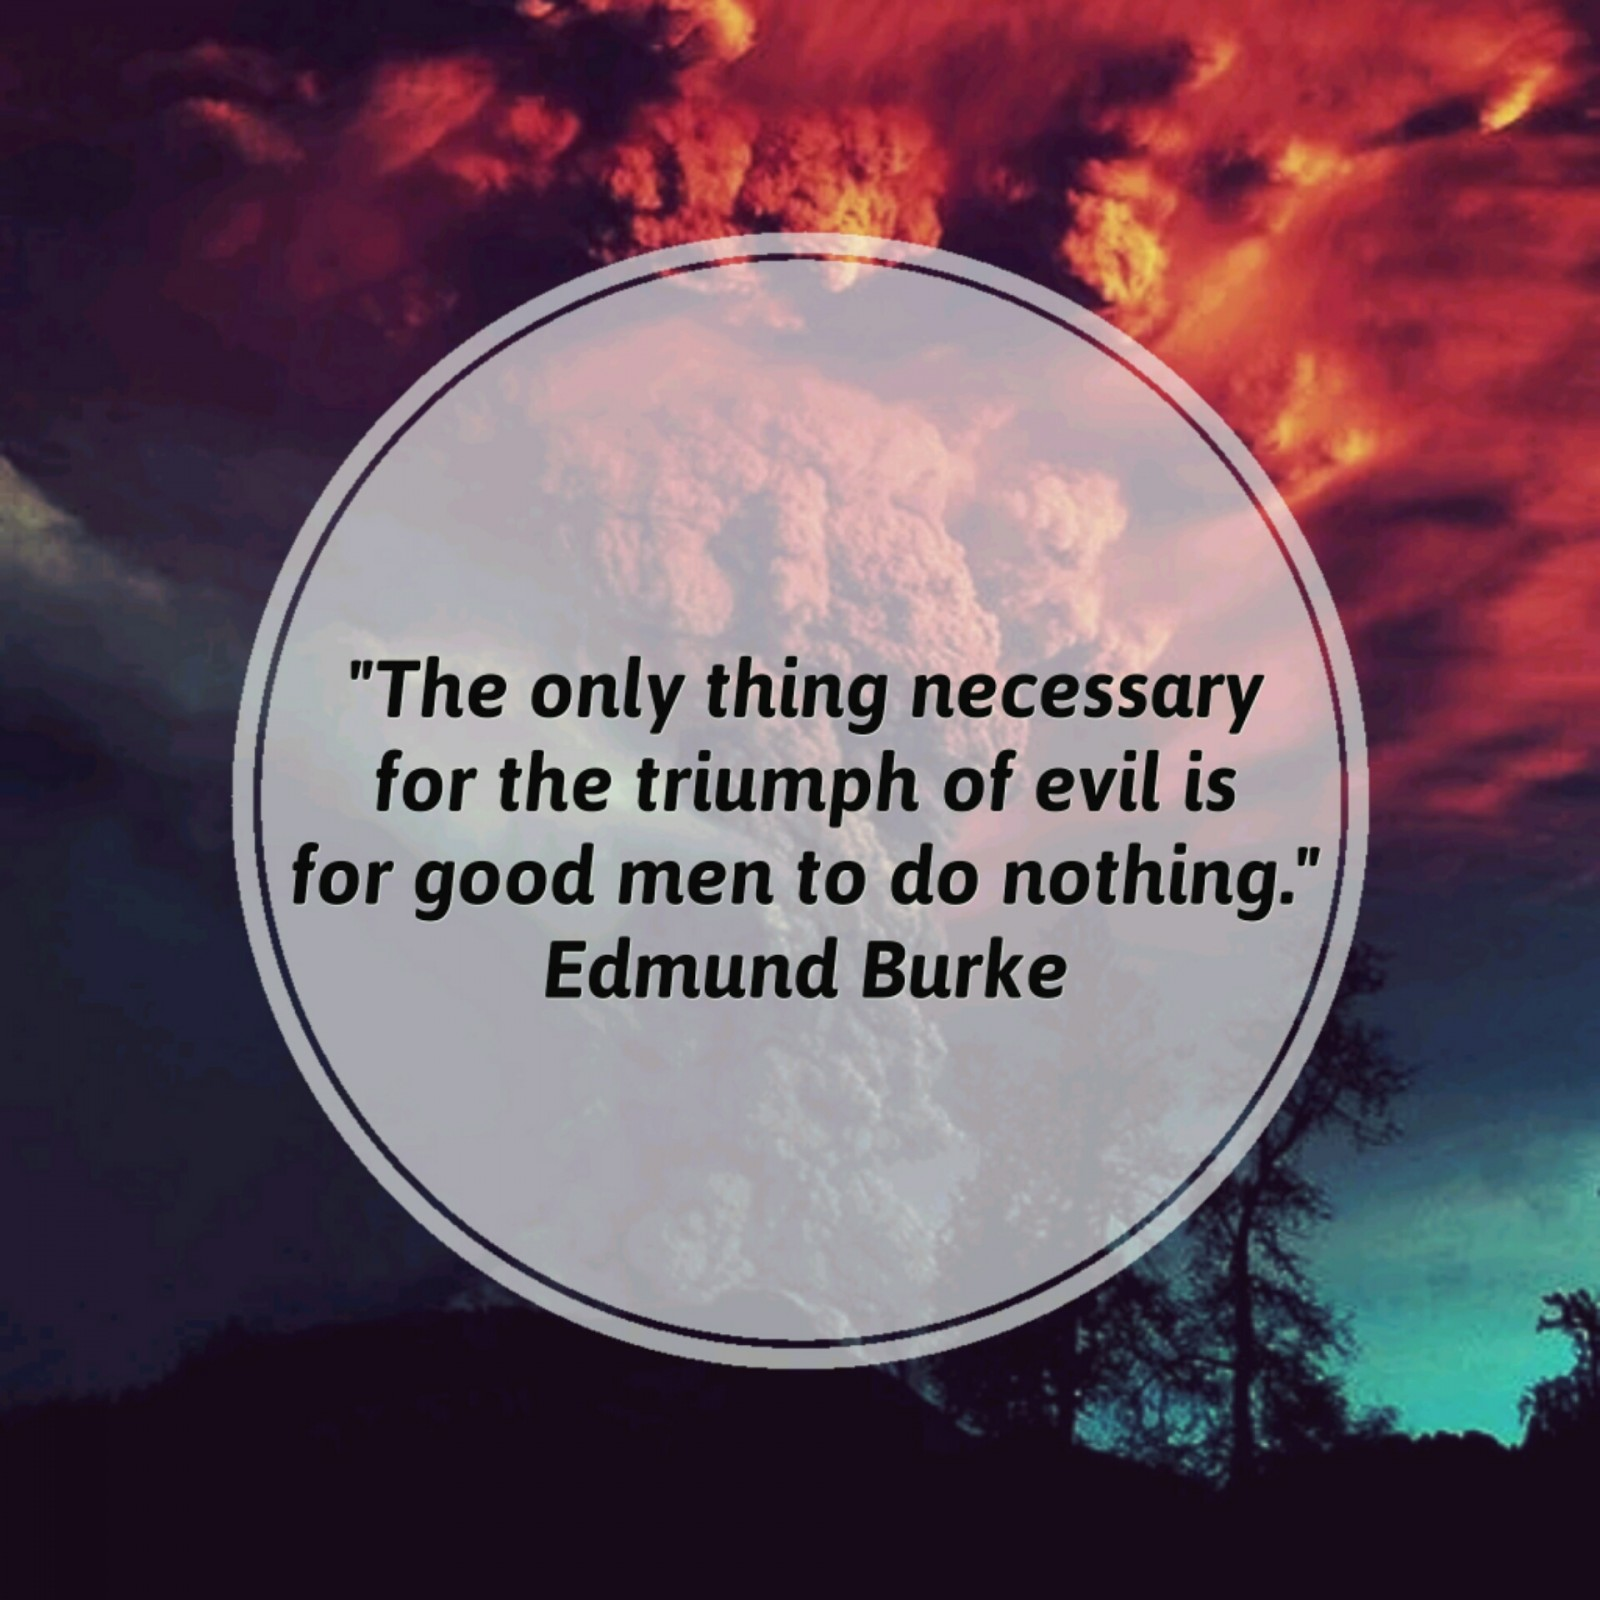 """The only thing necessary for the triumph of evil is for good men to do nothing."" - Edmund Burke"